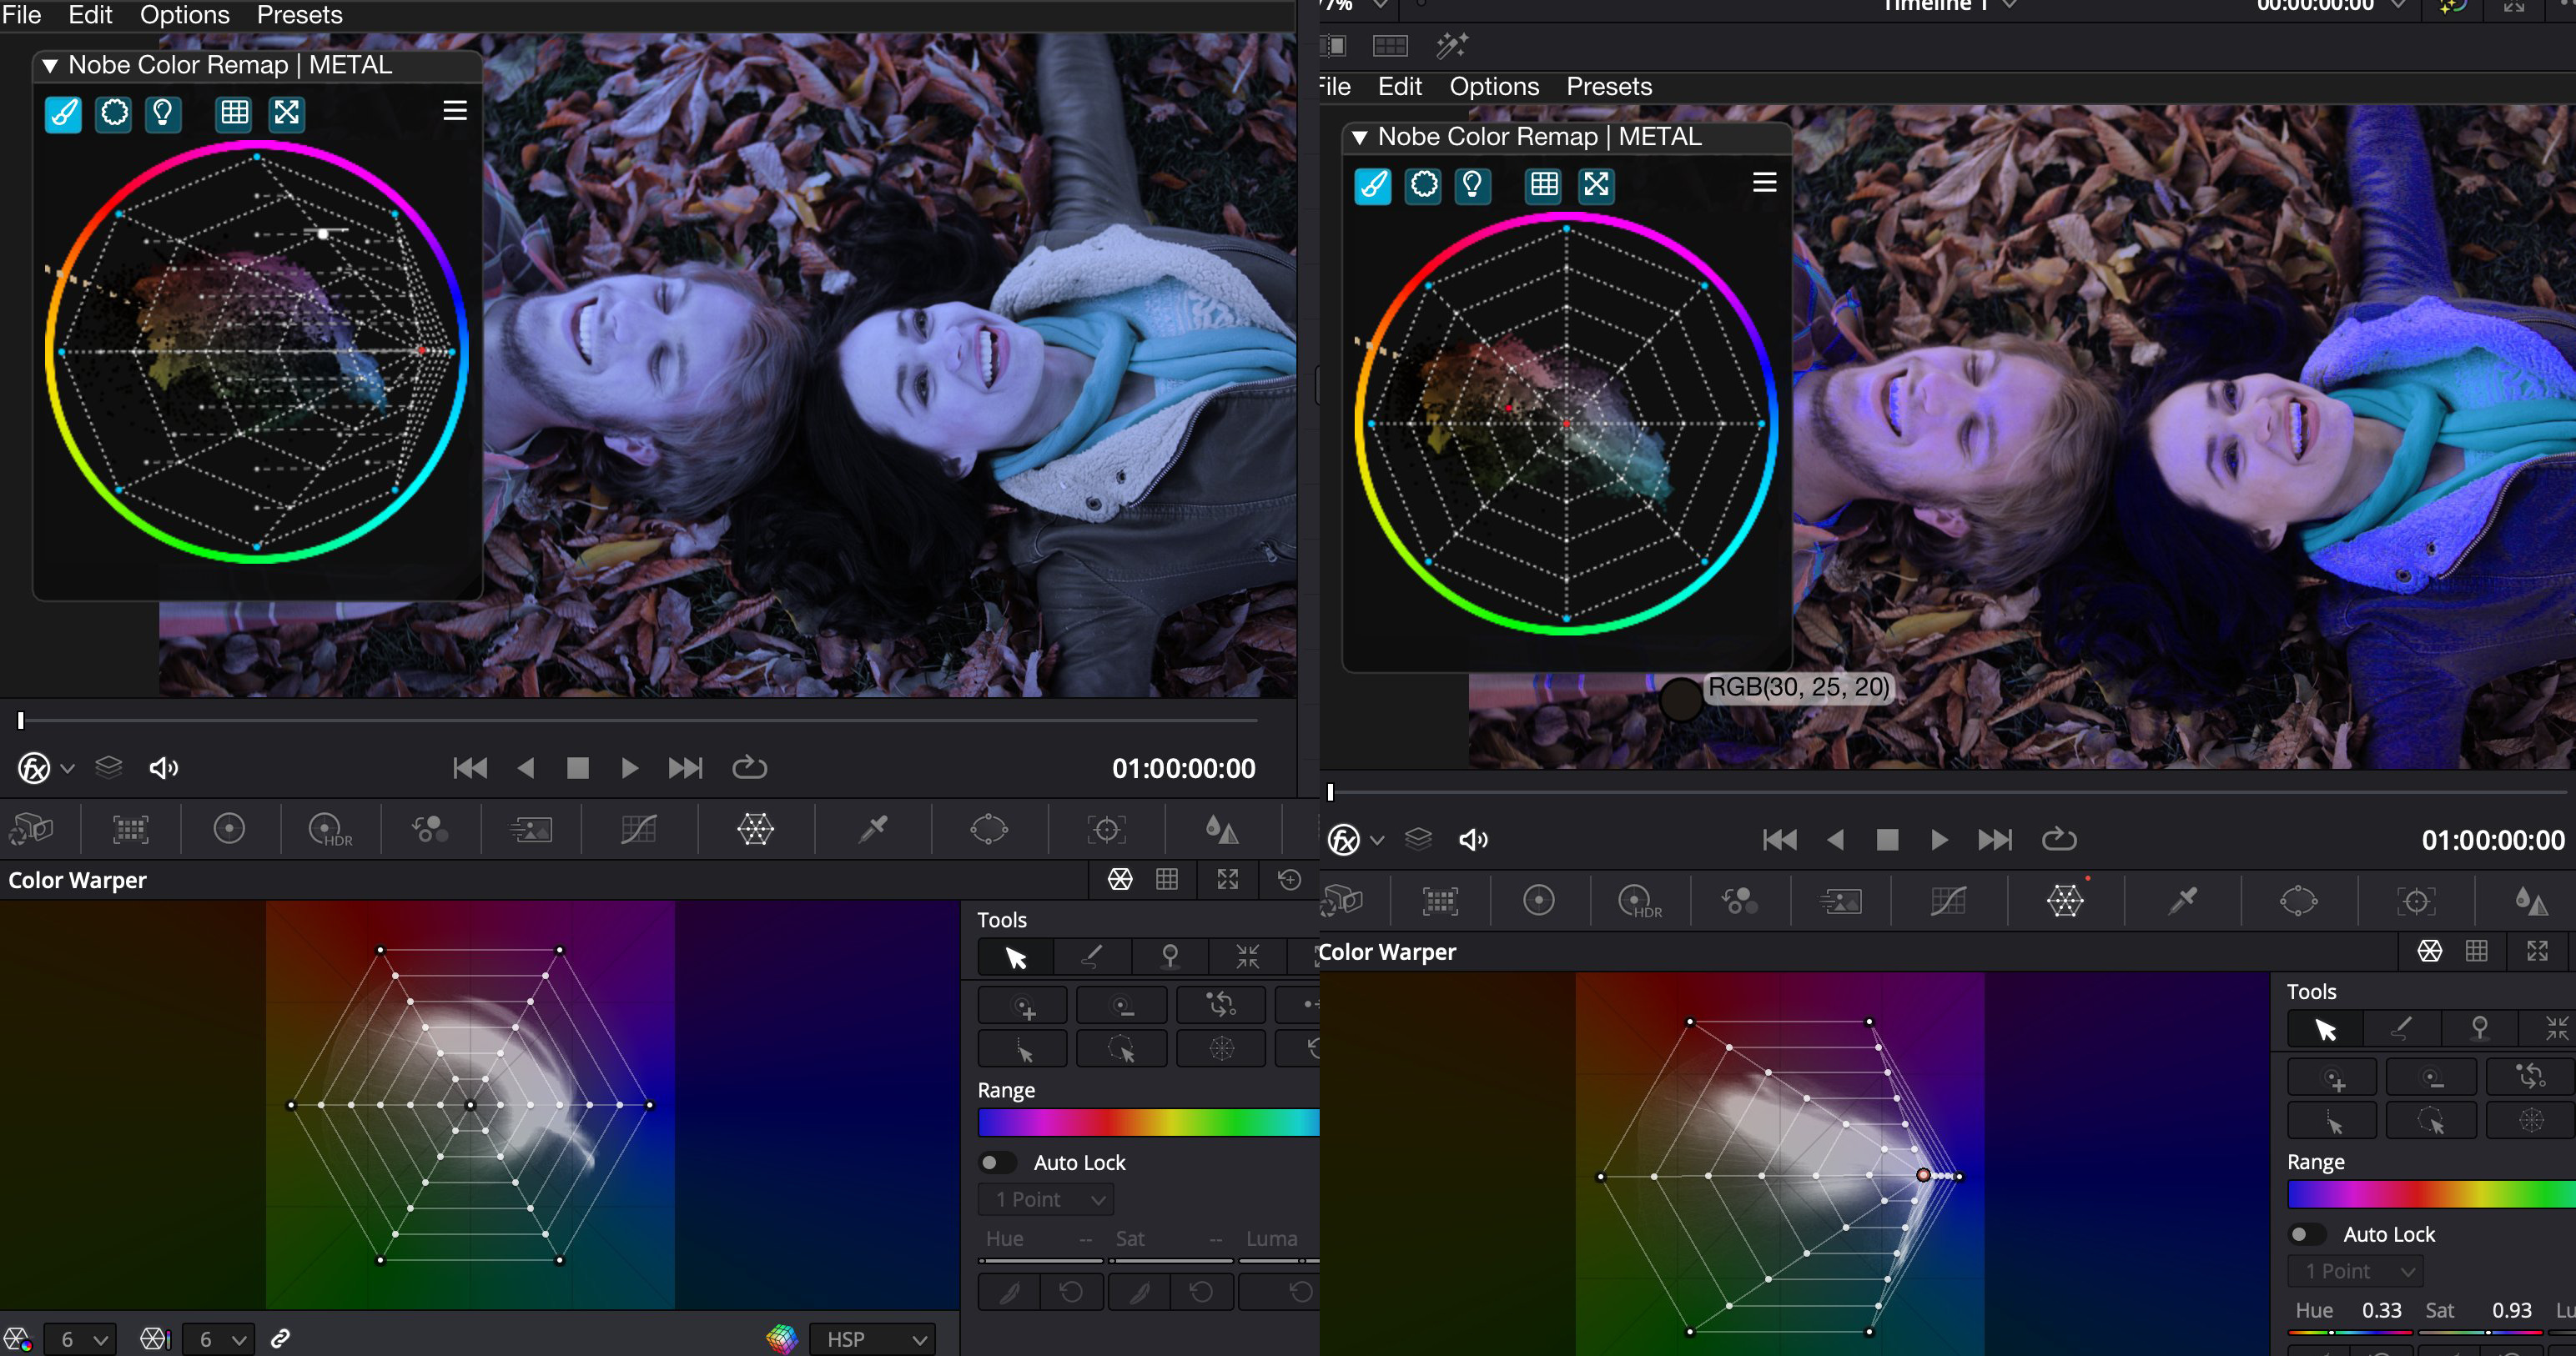 Nobe Color Remap for all your post-production tools. The original Color Warper 4